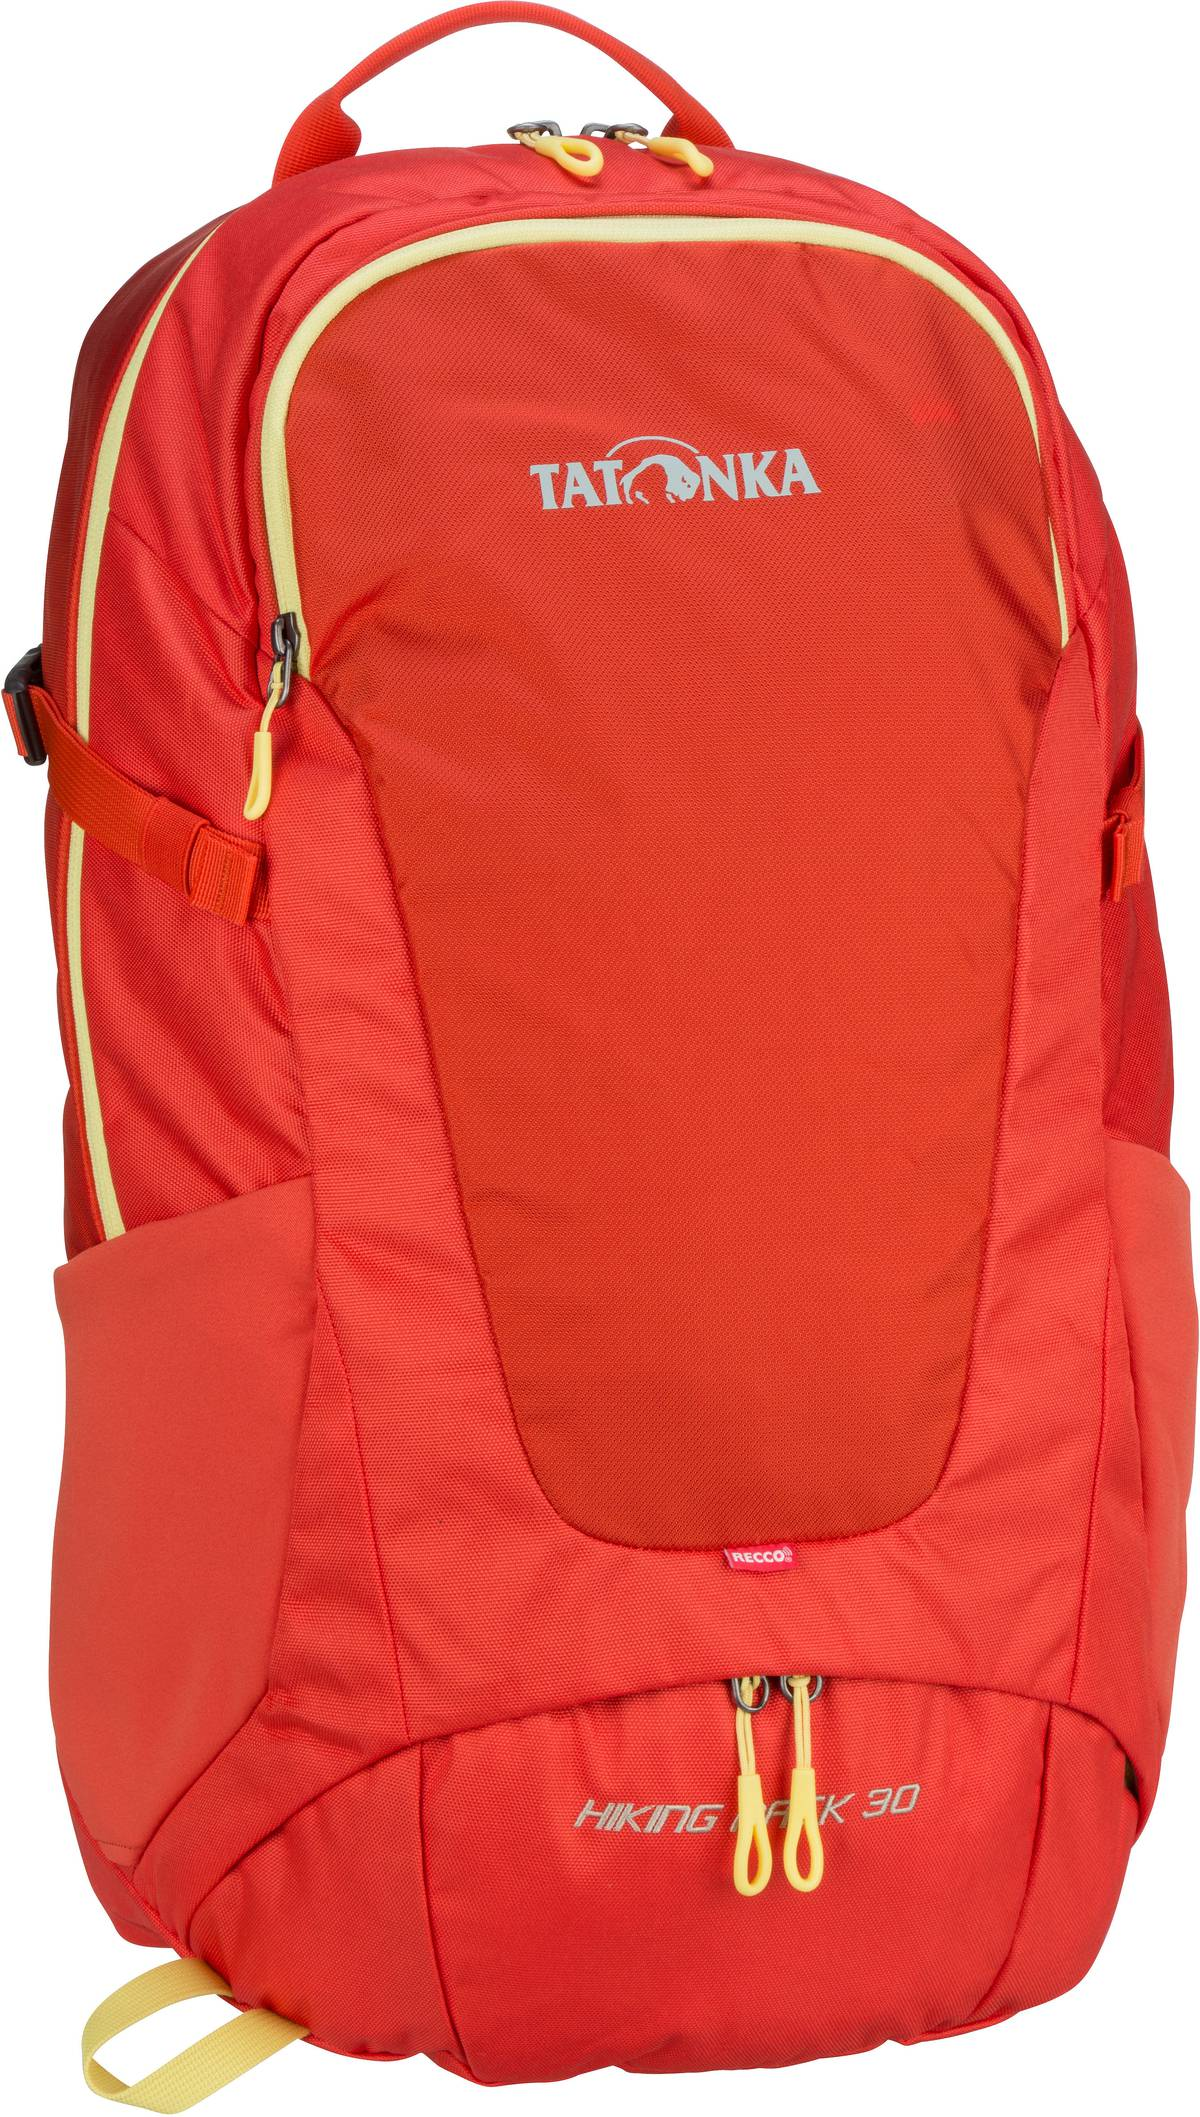 Wanderrucksack Hiking Pack 30 Red Orange (30 Liter)